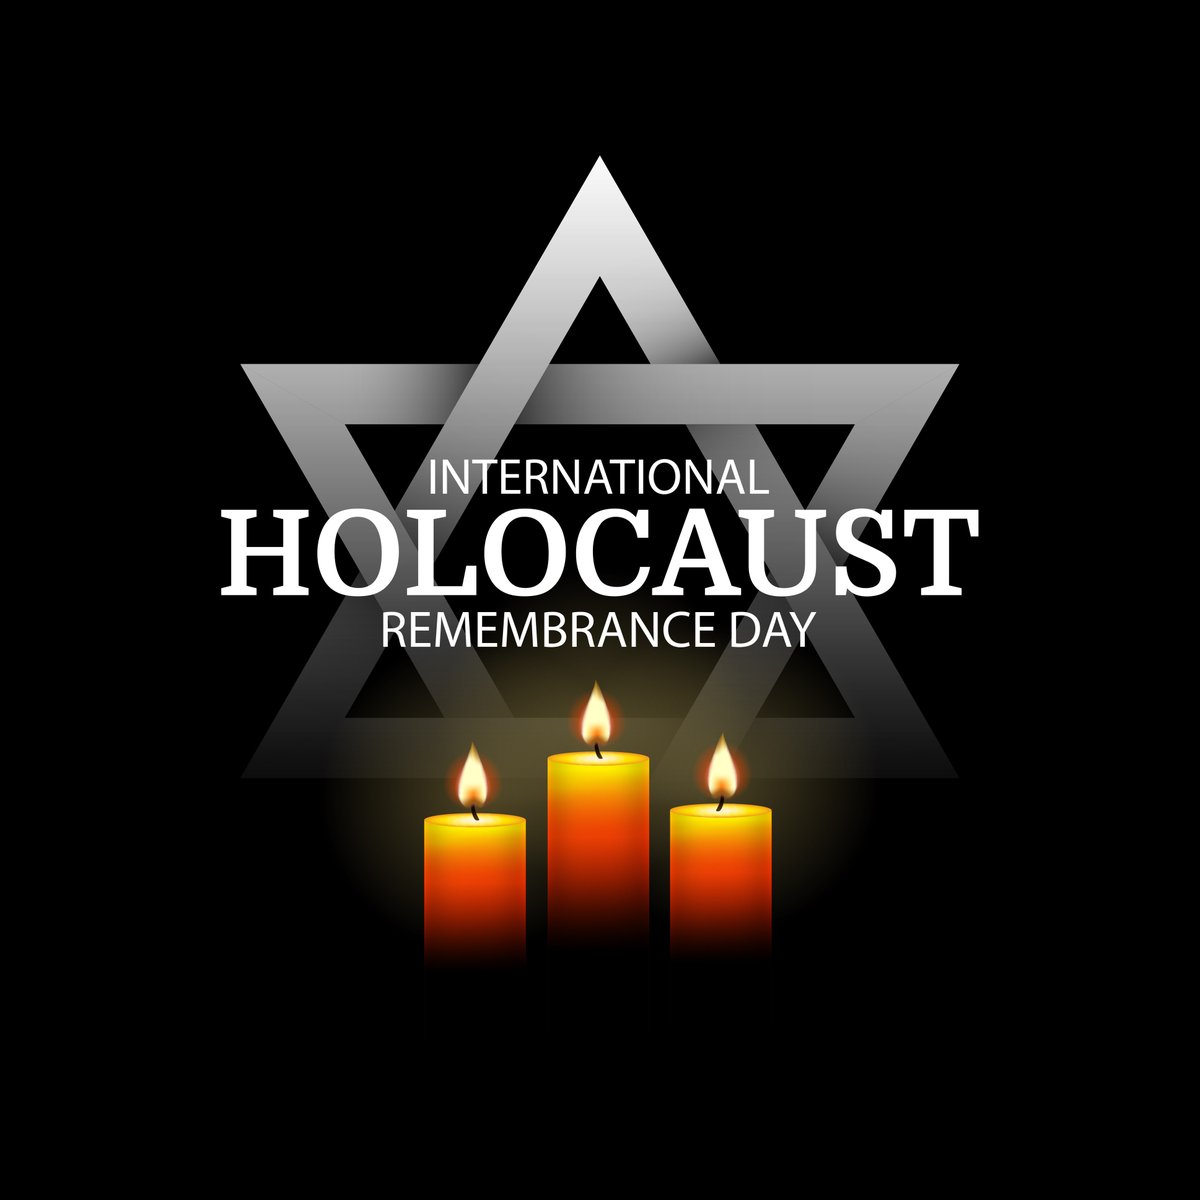 Today is #HolocaustRemembranceDay. The world is marking the 76th anniversary of the liberation of Auschwitz-Birkenau.